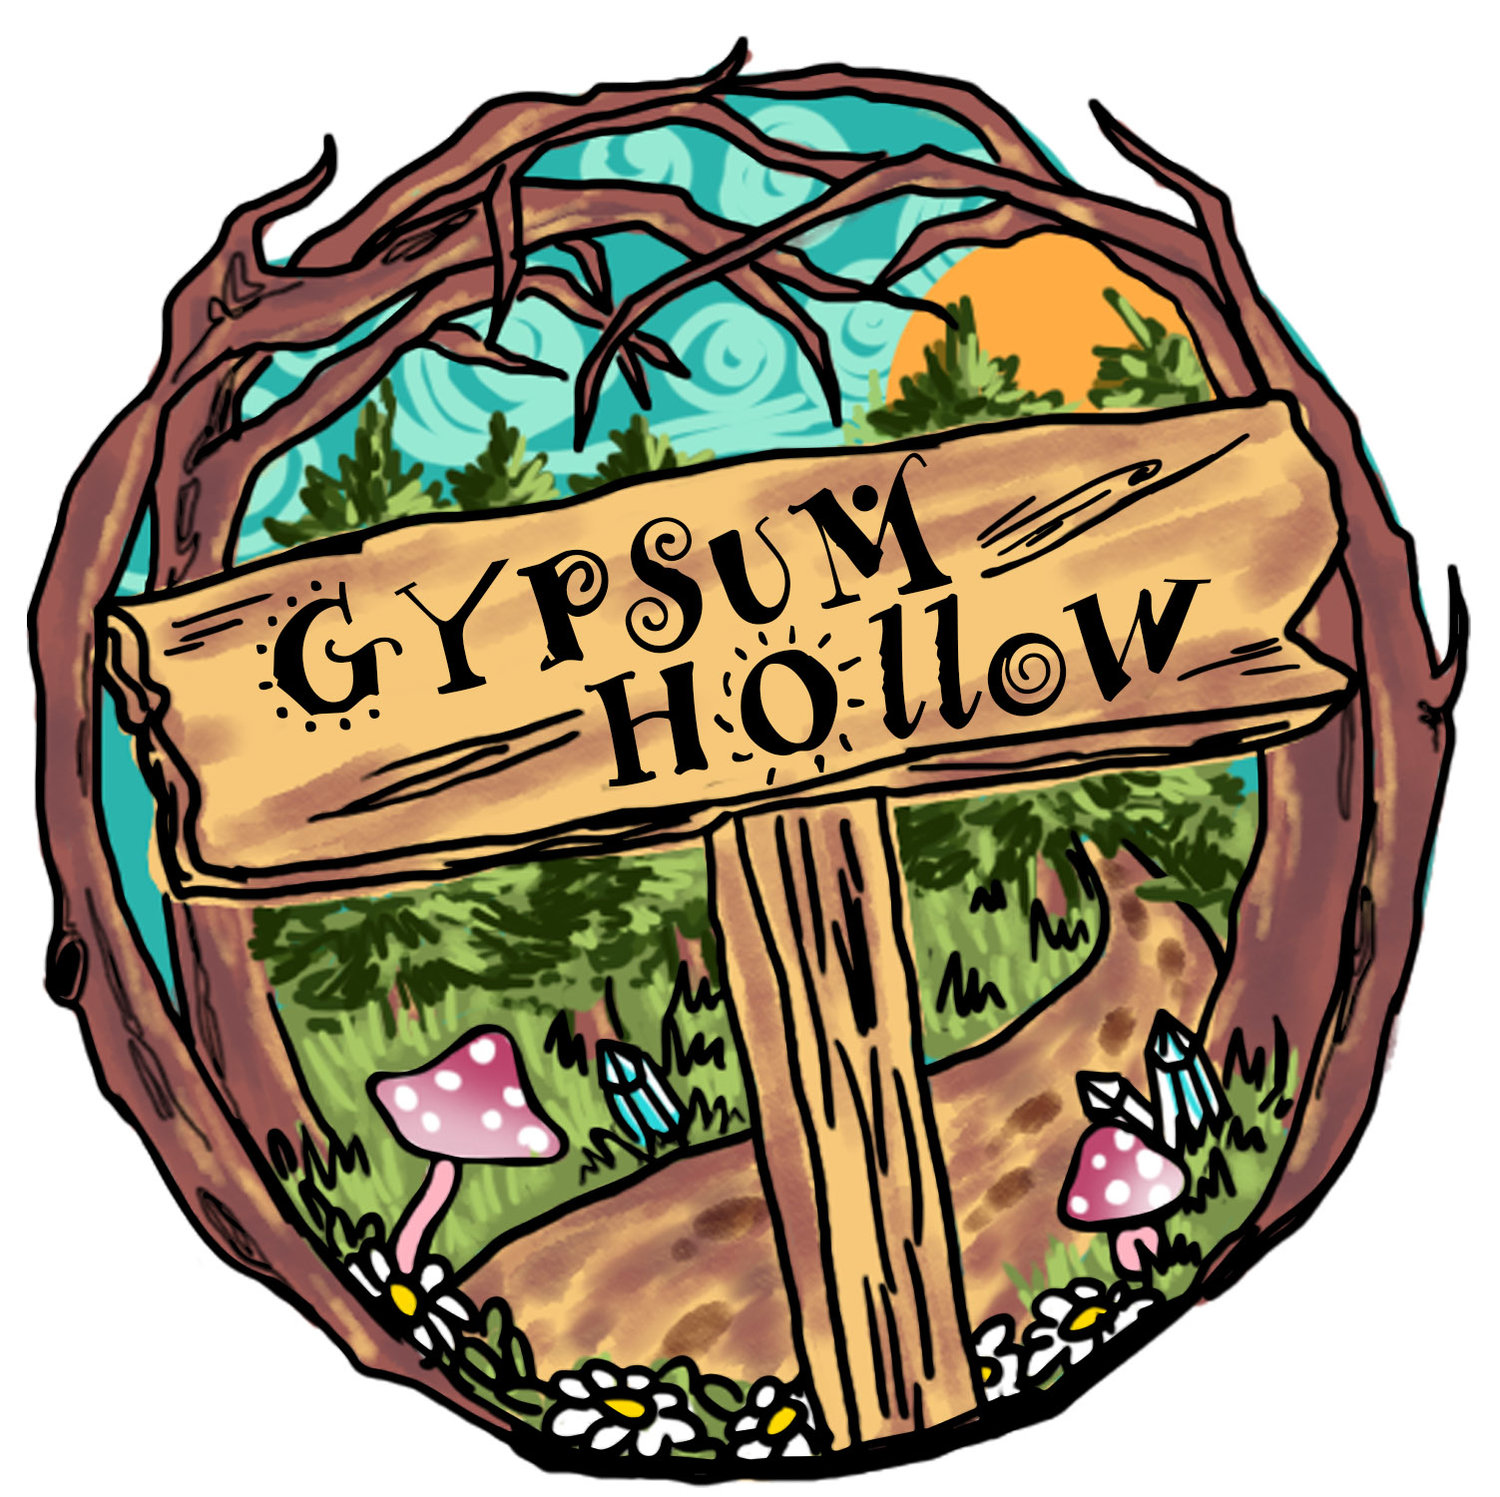 Gypsum Hollow